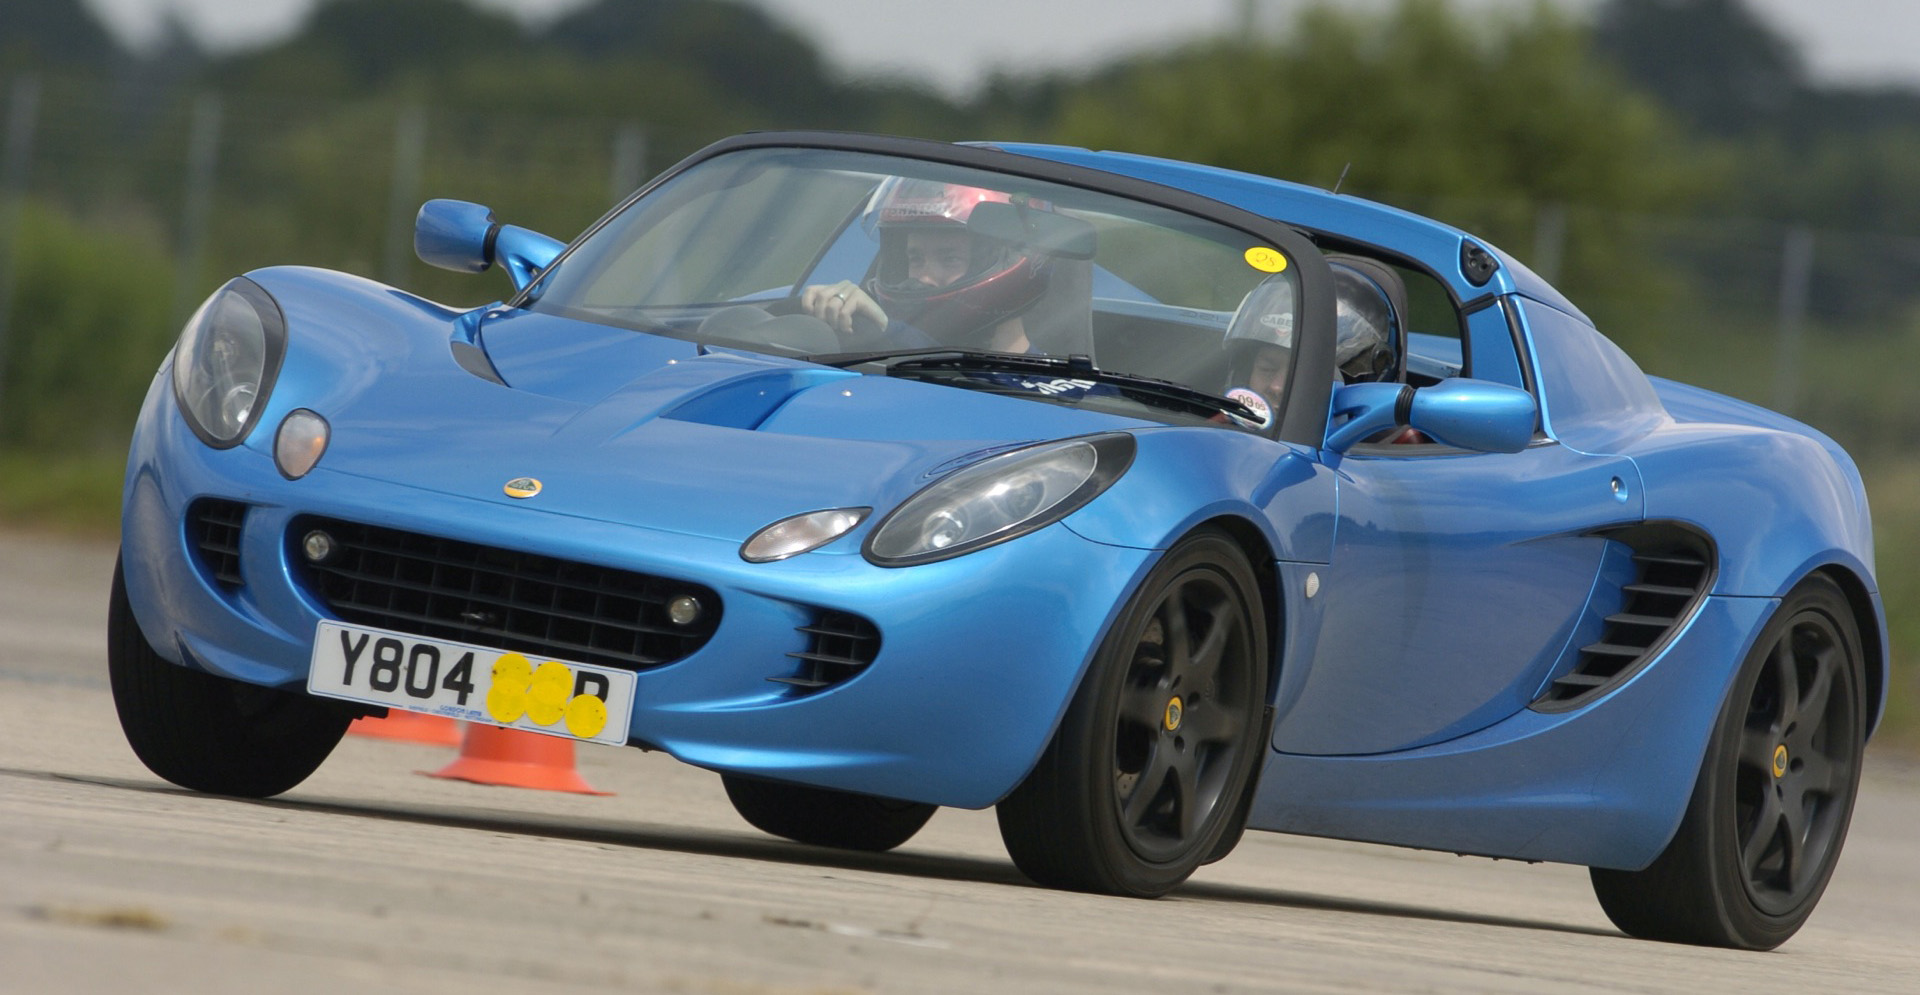 Drivers generation cult driving perfection lotus elise lotus elise vanachro Gallery